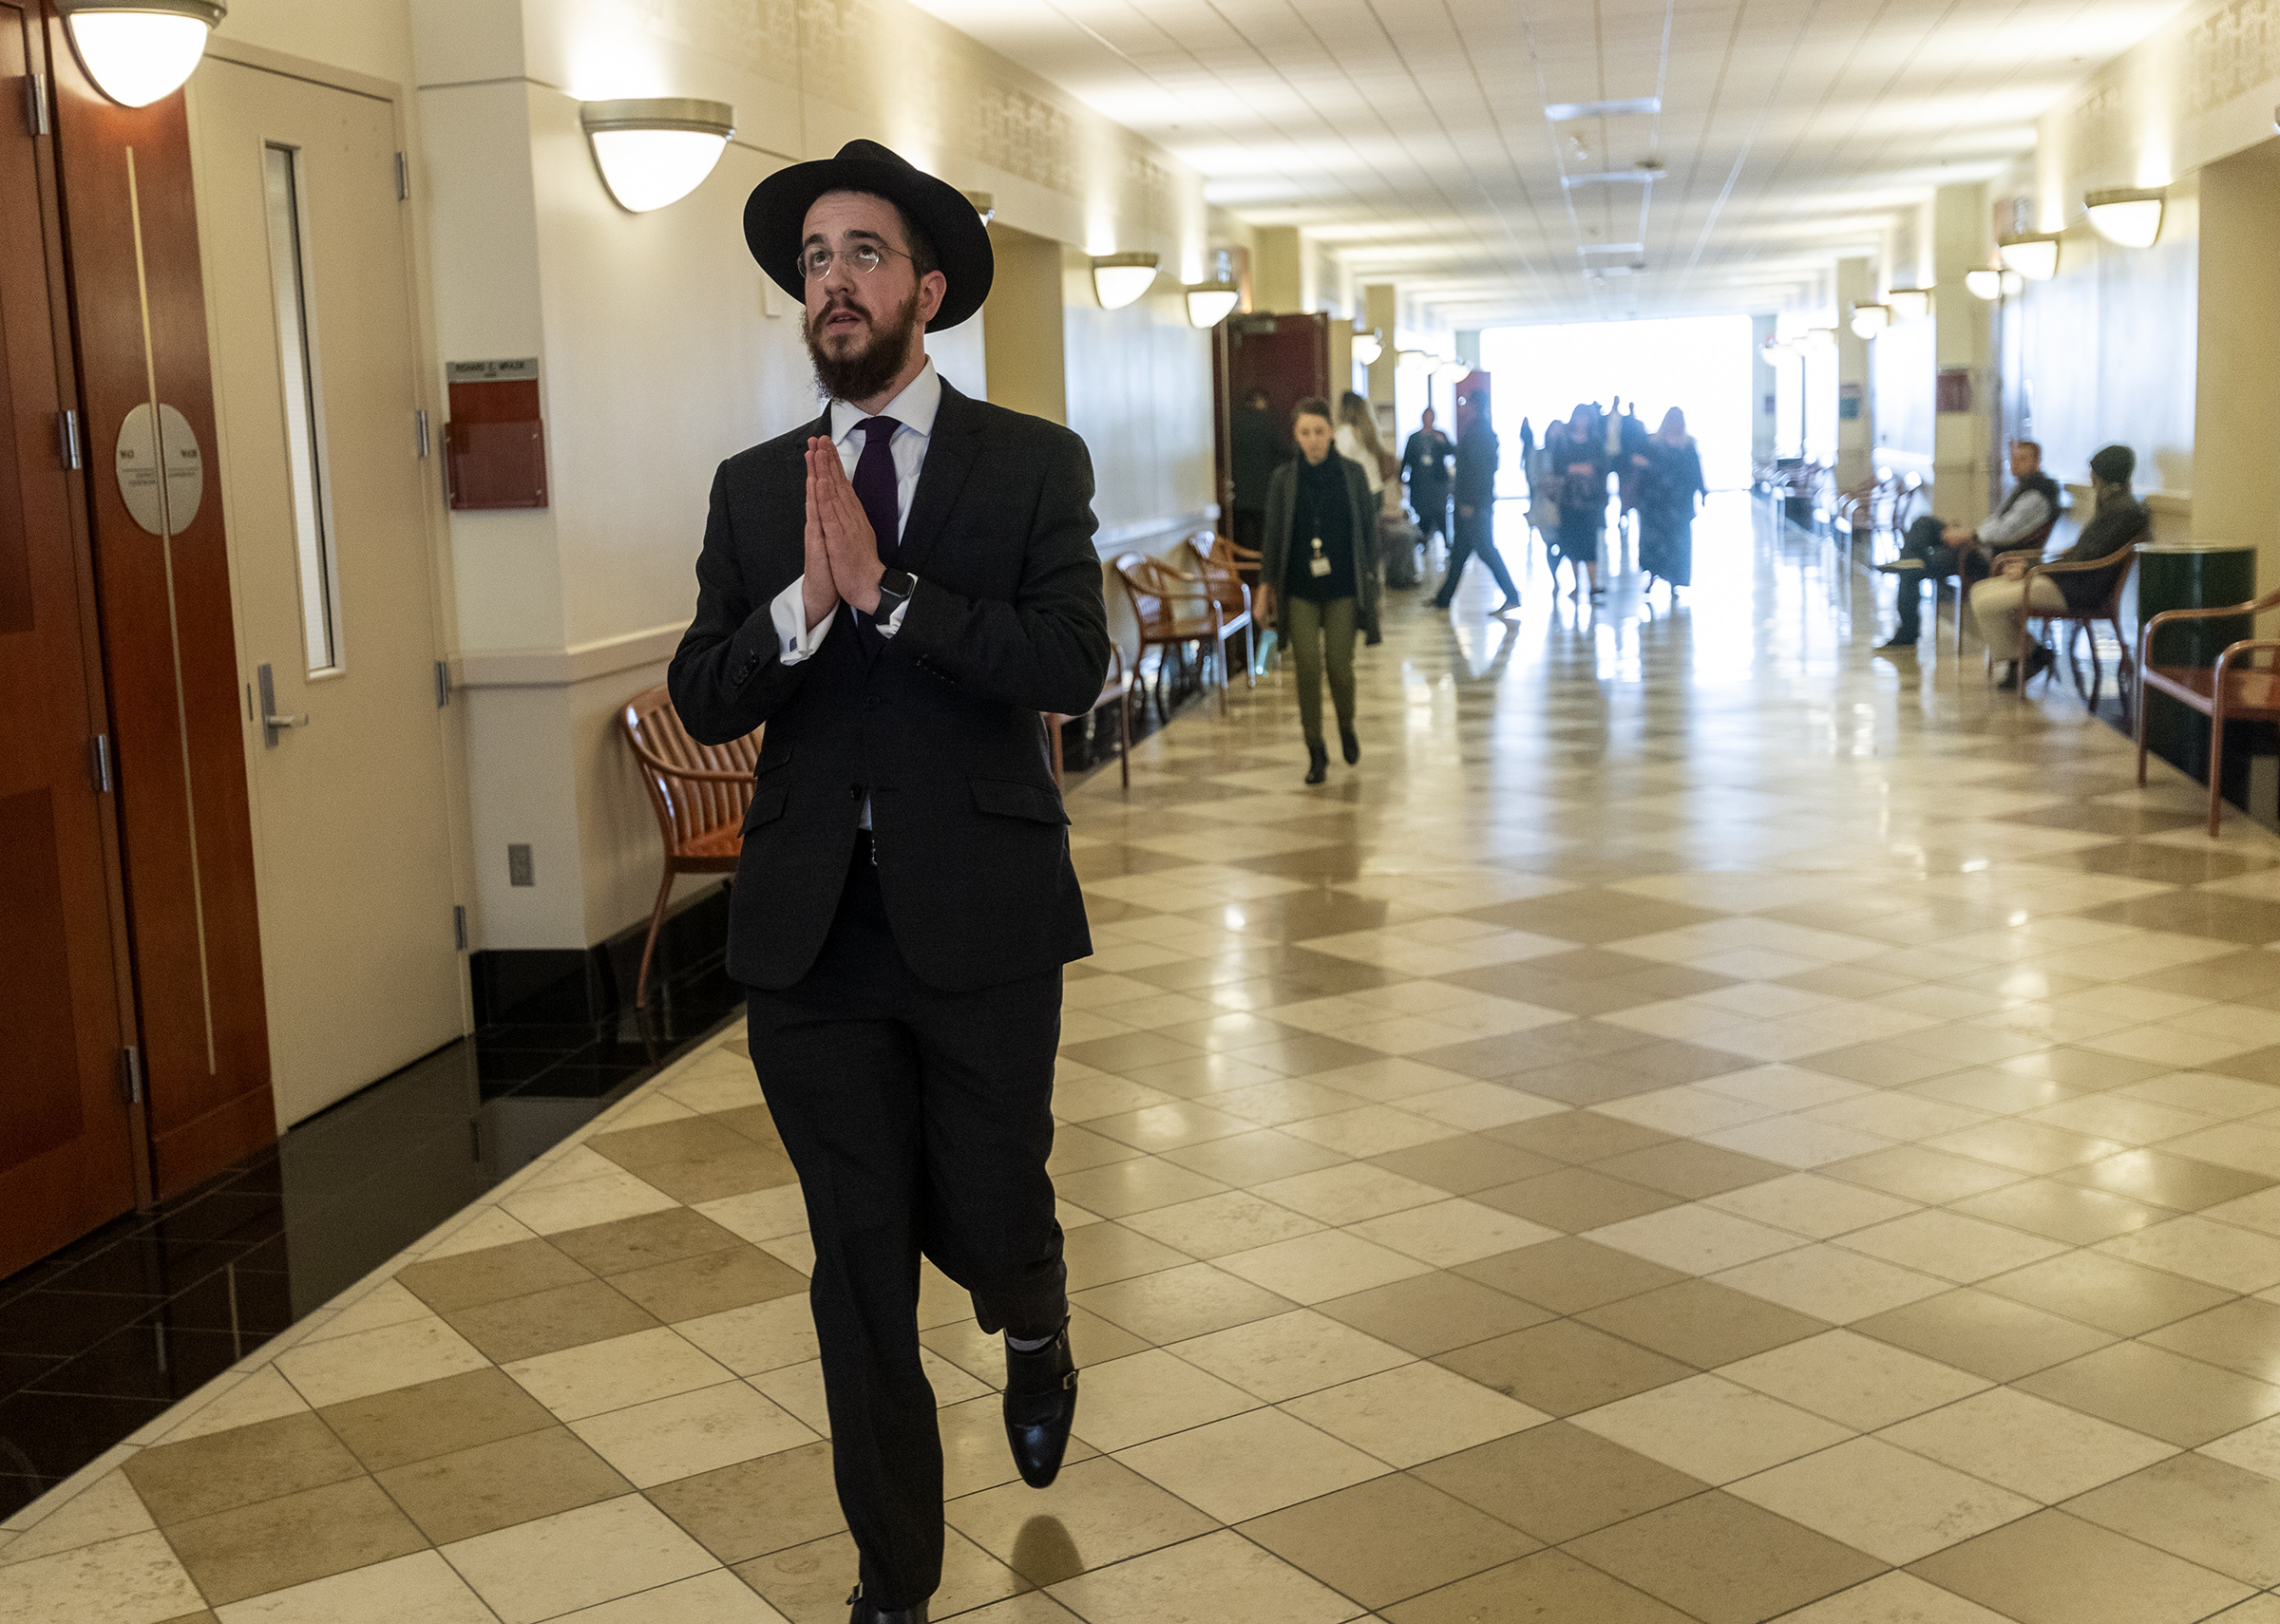 """Rabbi Avrohom """"Avremi"""" Zippel walks away from a courtroom in the Matheson Courthouse in Salt Lake City on Friday, Nov. 15, 2019, after his former nanny was found guilty on five counts of aggravated sexual abuse of a child, a first-degree felony, and two counts of forcible sex abuse, a second-degree felony."""